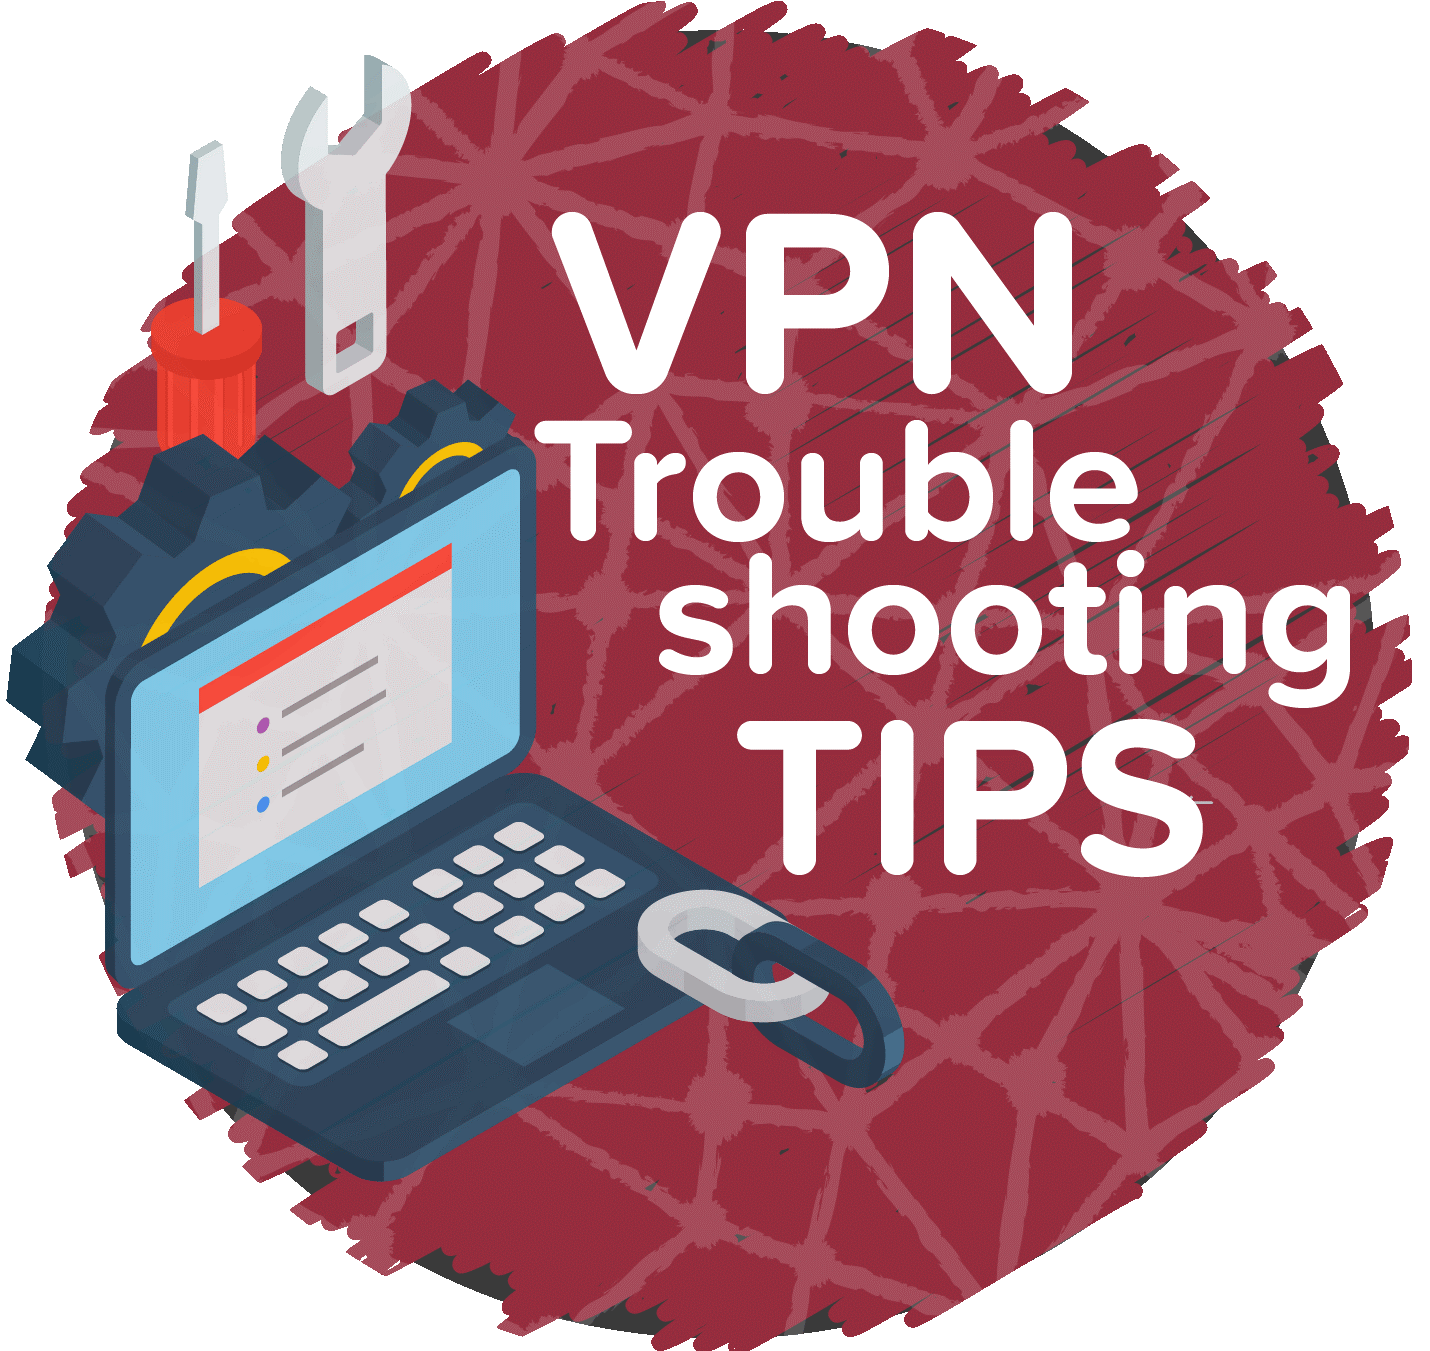 Step 4 — Troubleshoot Your Connection